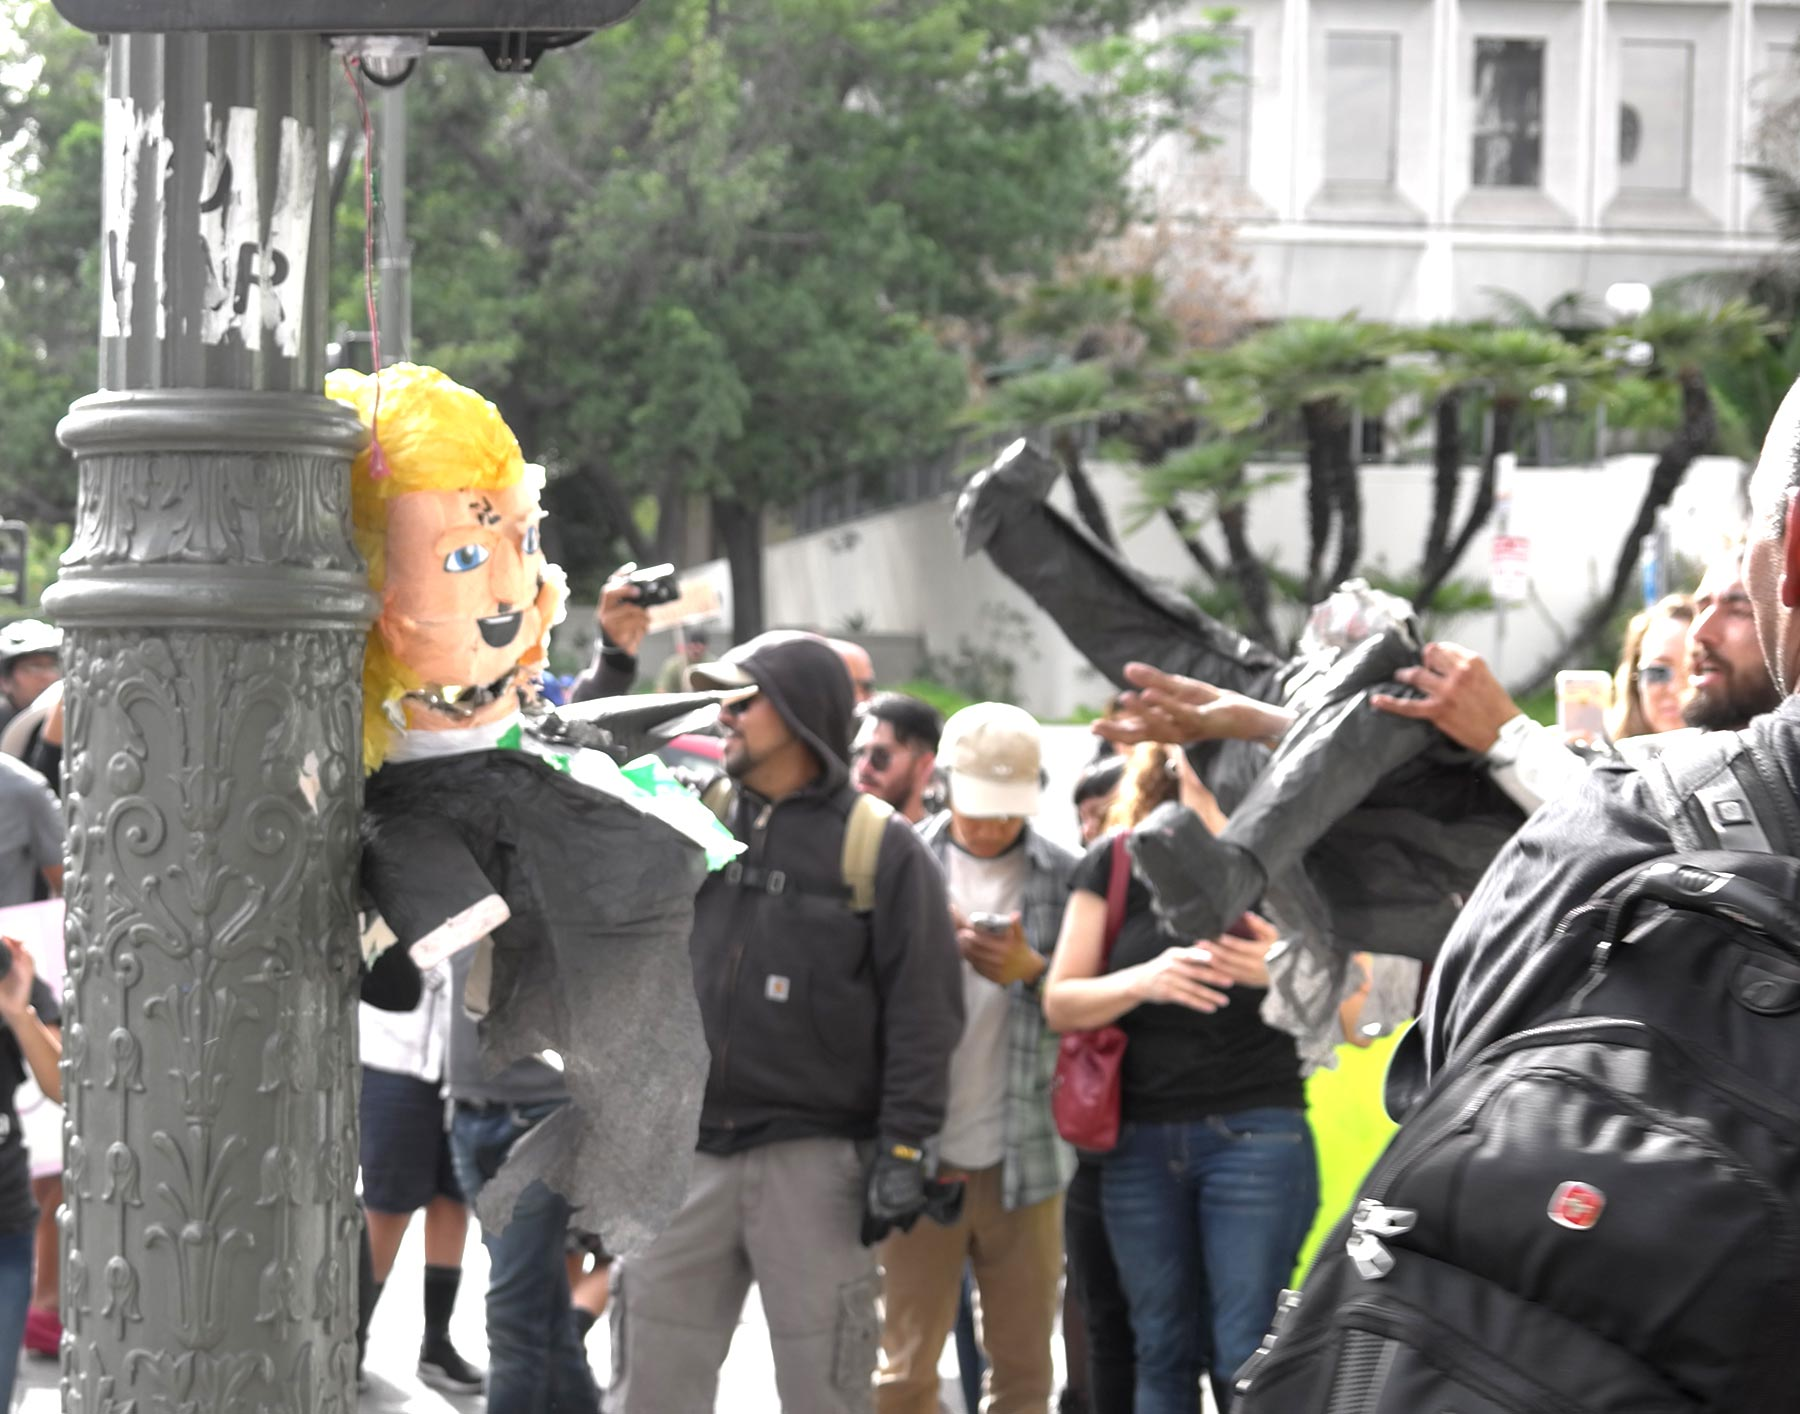 2016TrumpProtest7.jpg